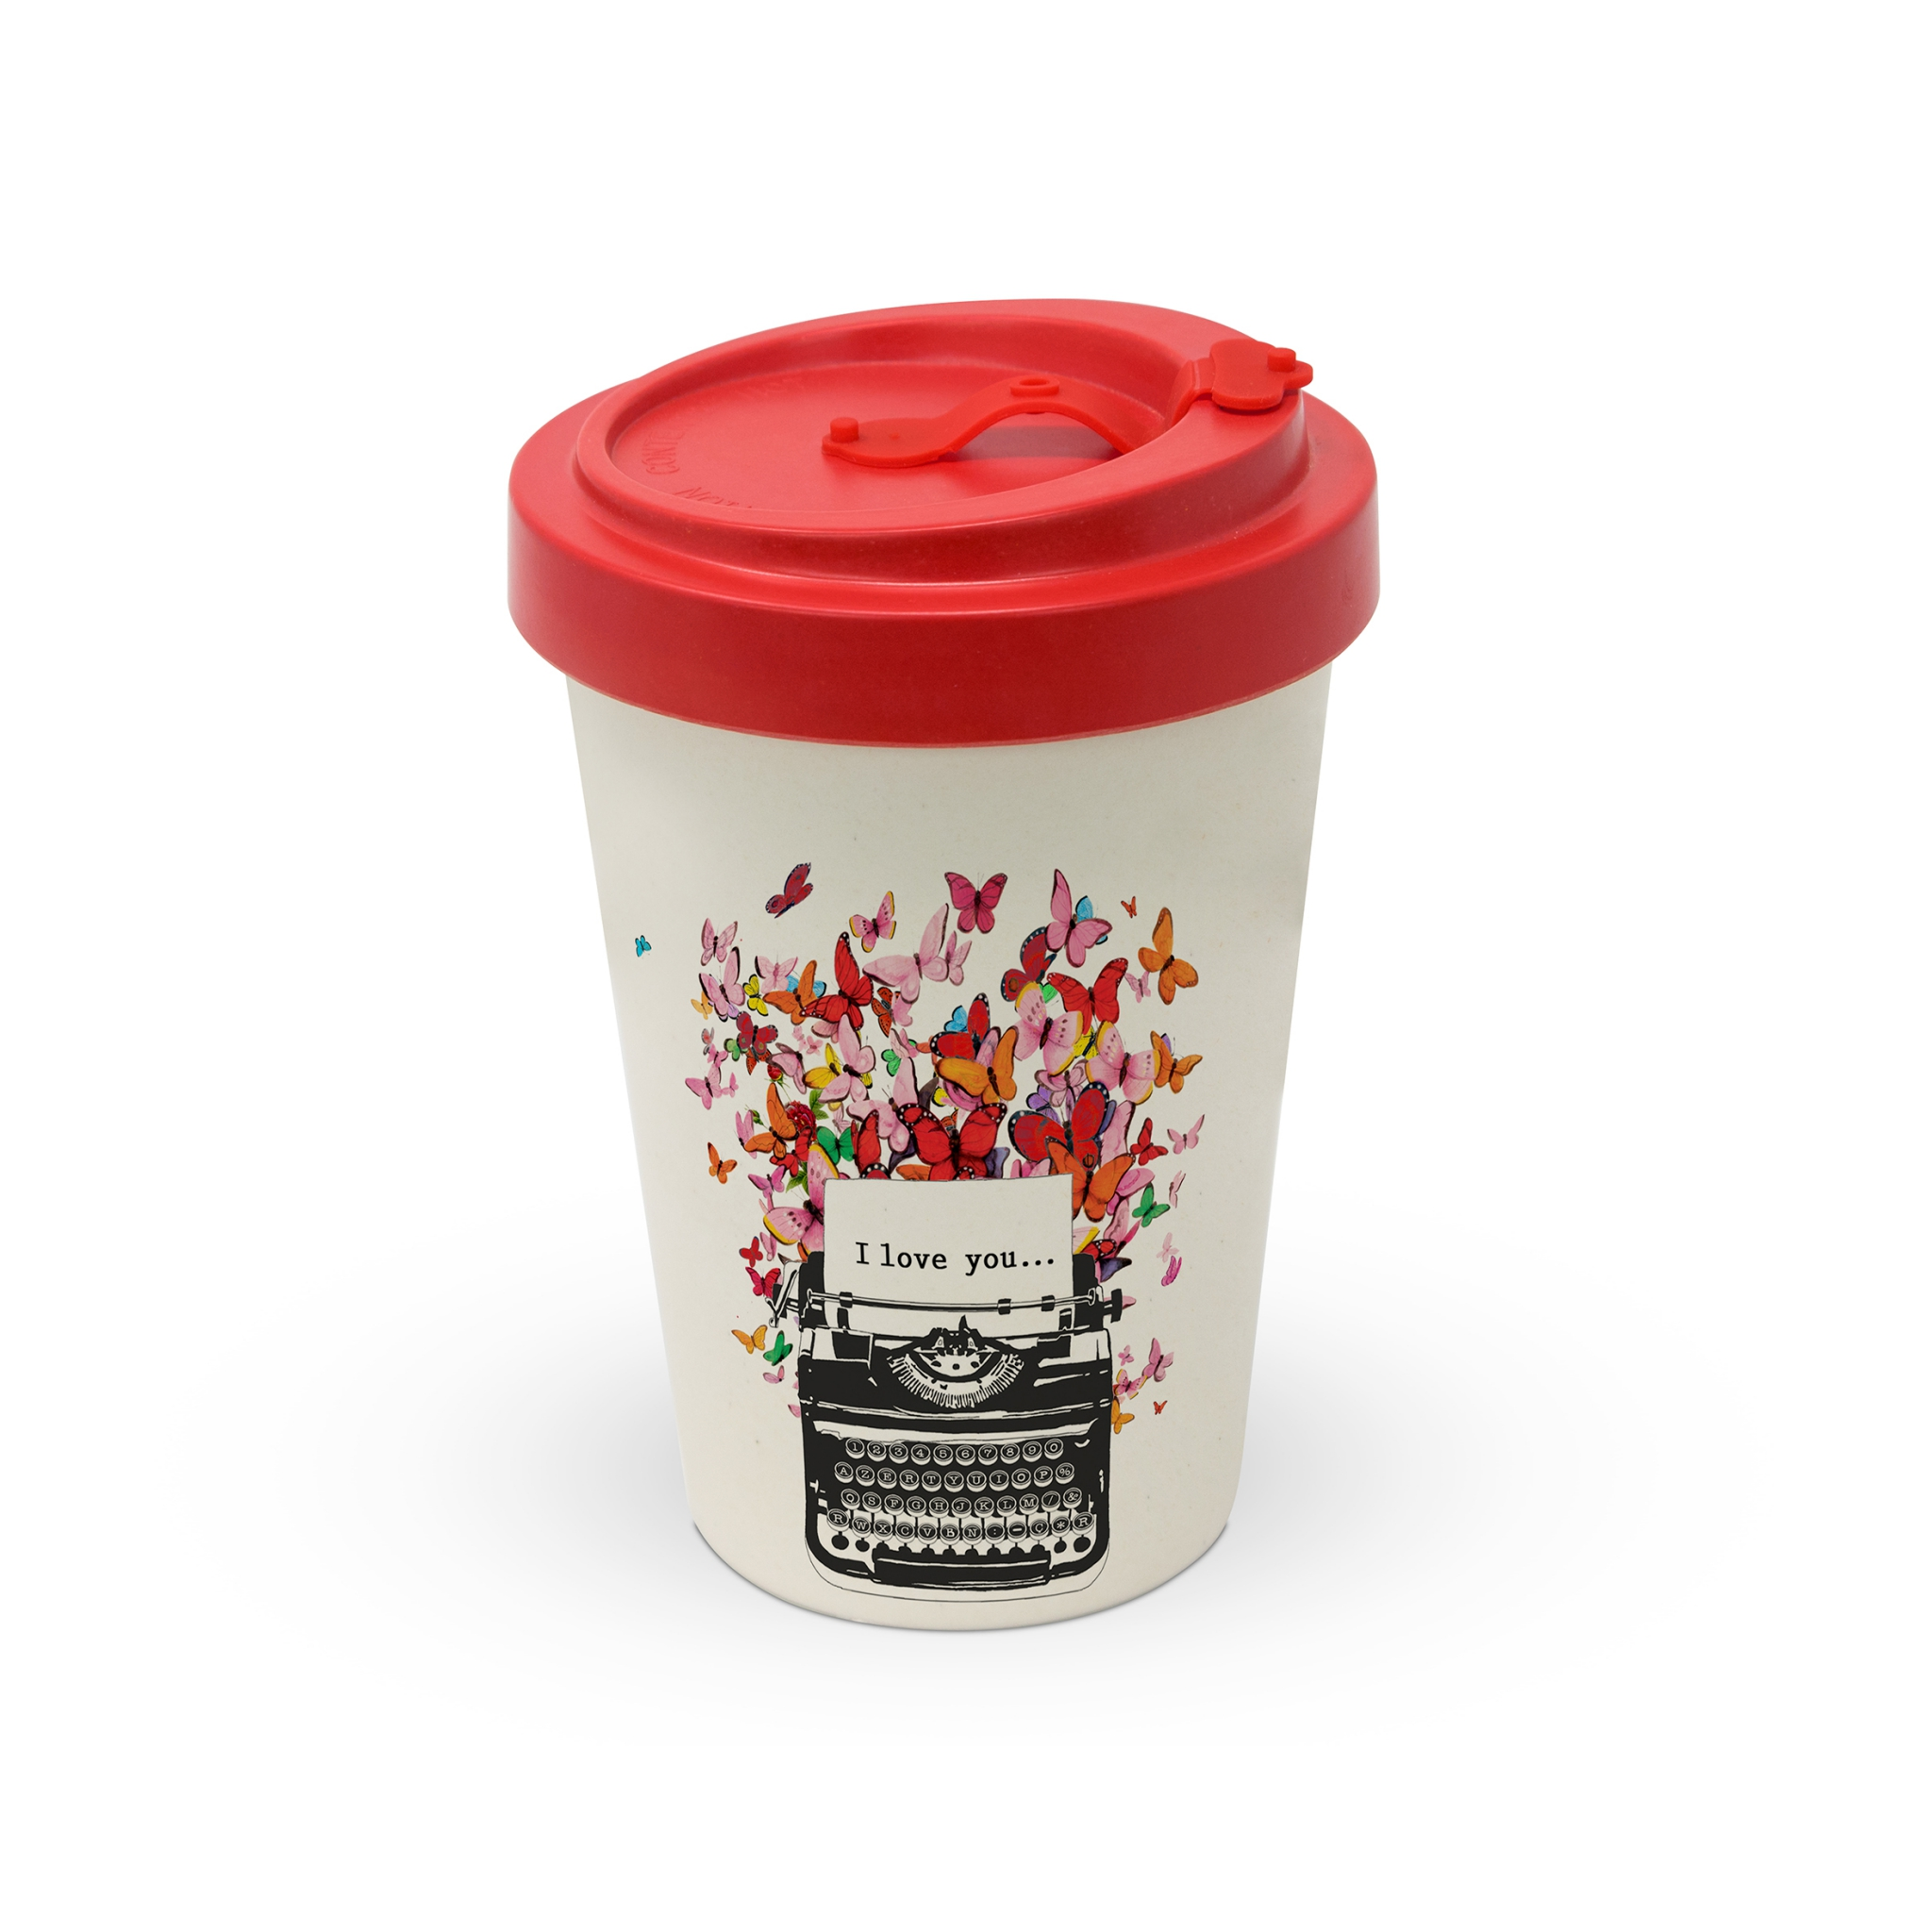 Bamboo mug To-Go - I Love You